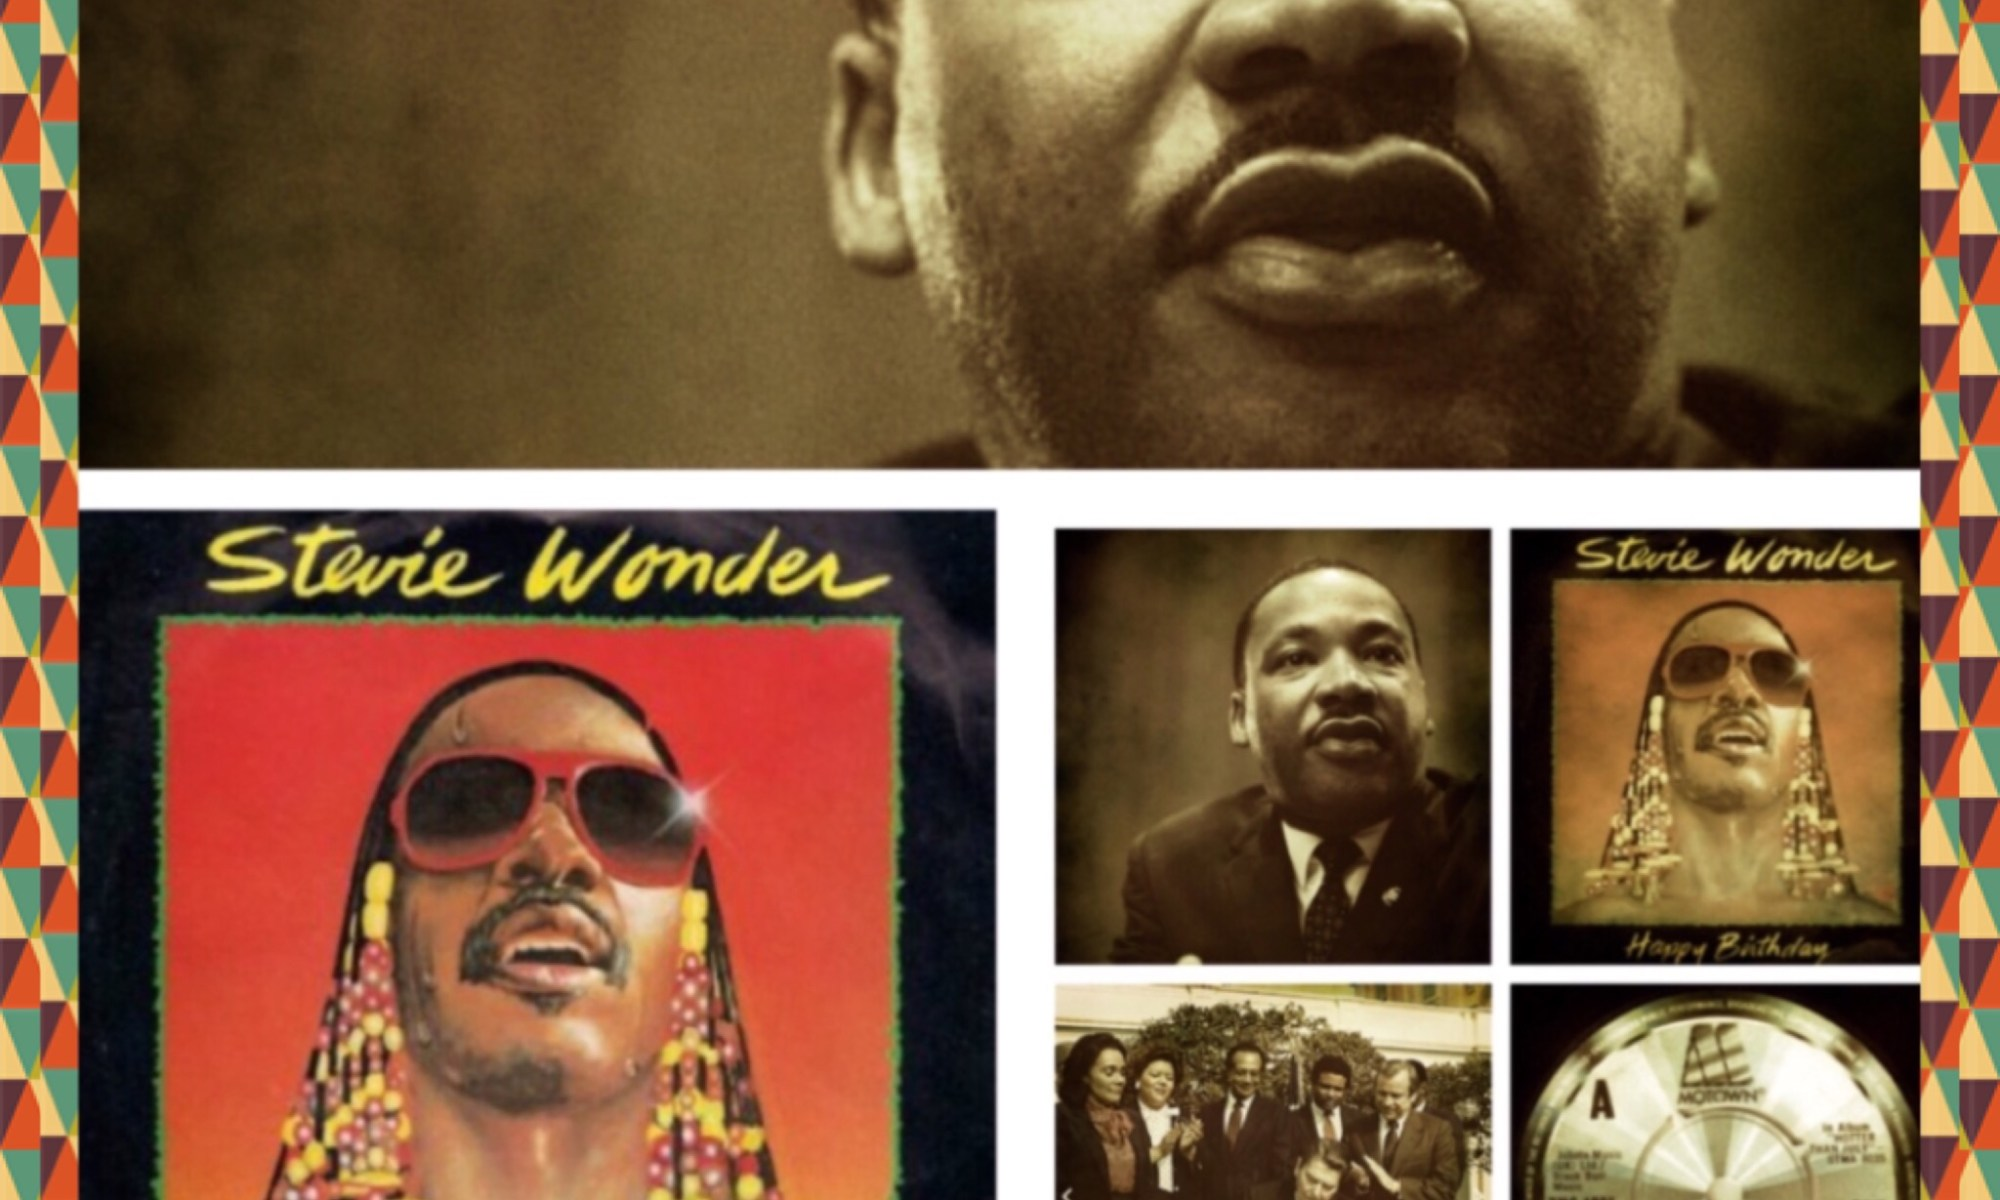 Stevie Wonder Happy Birthday.Stevie Wonder S Happy Birthday How One Song Impacted A